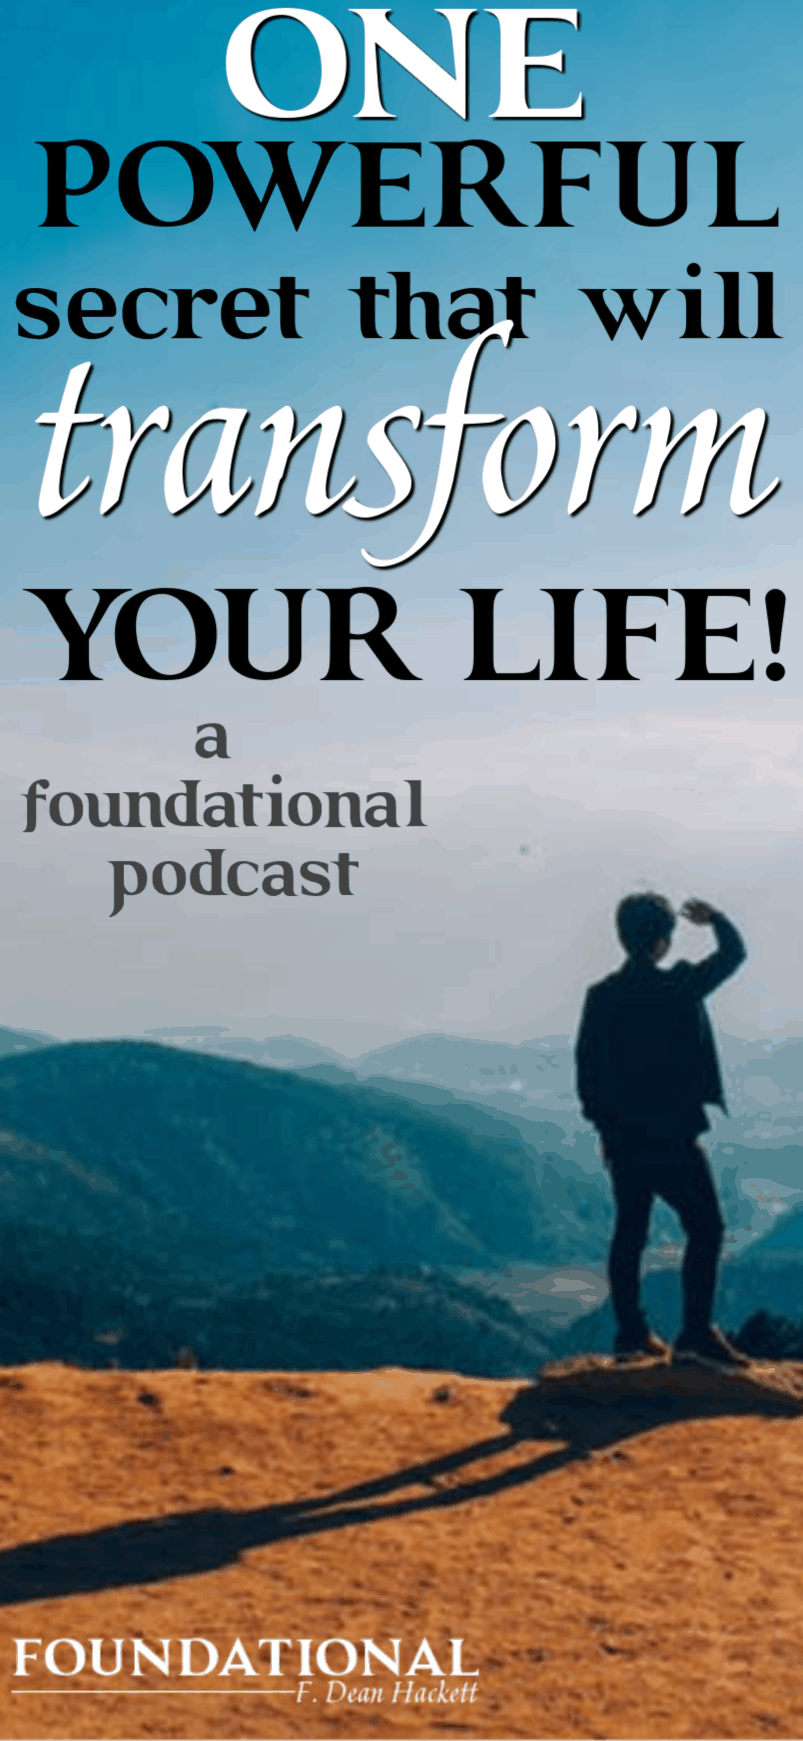 If you feel like you've failed and can't escape your past, this is the one powerful secret that will transform your life forever. #Foundational #life #identity #identityinChrist #JesusChrist #Bible #Easter